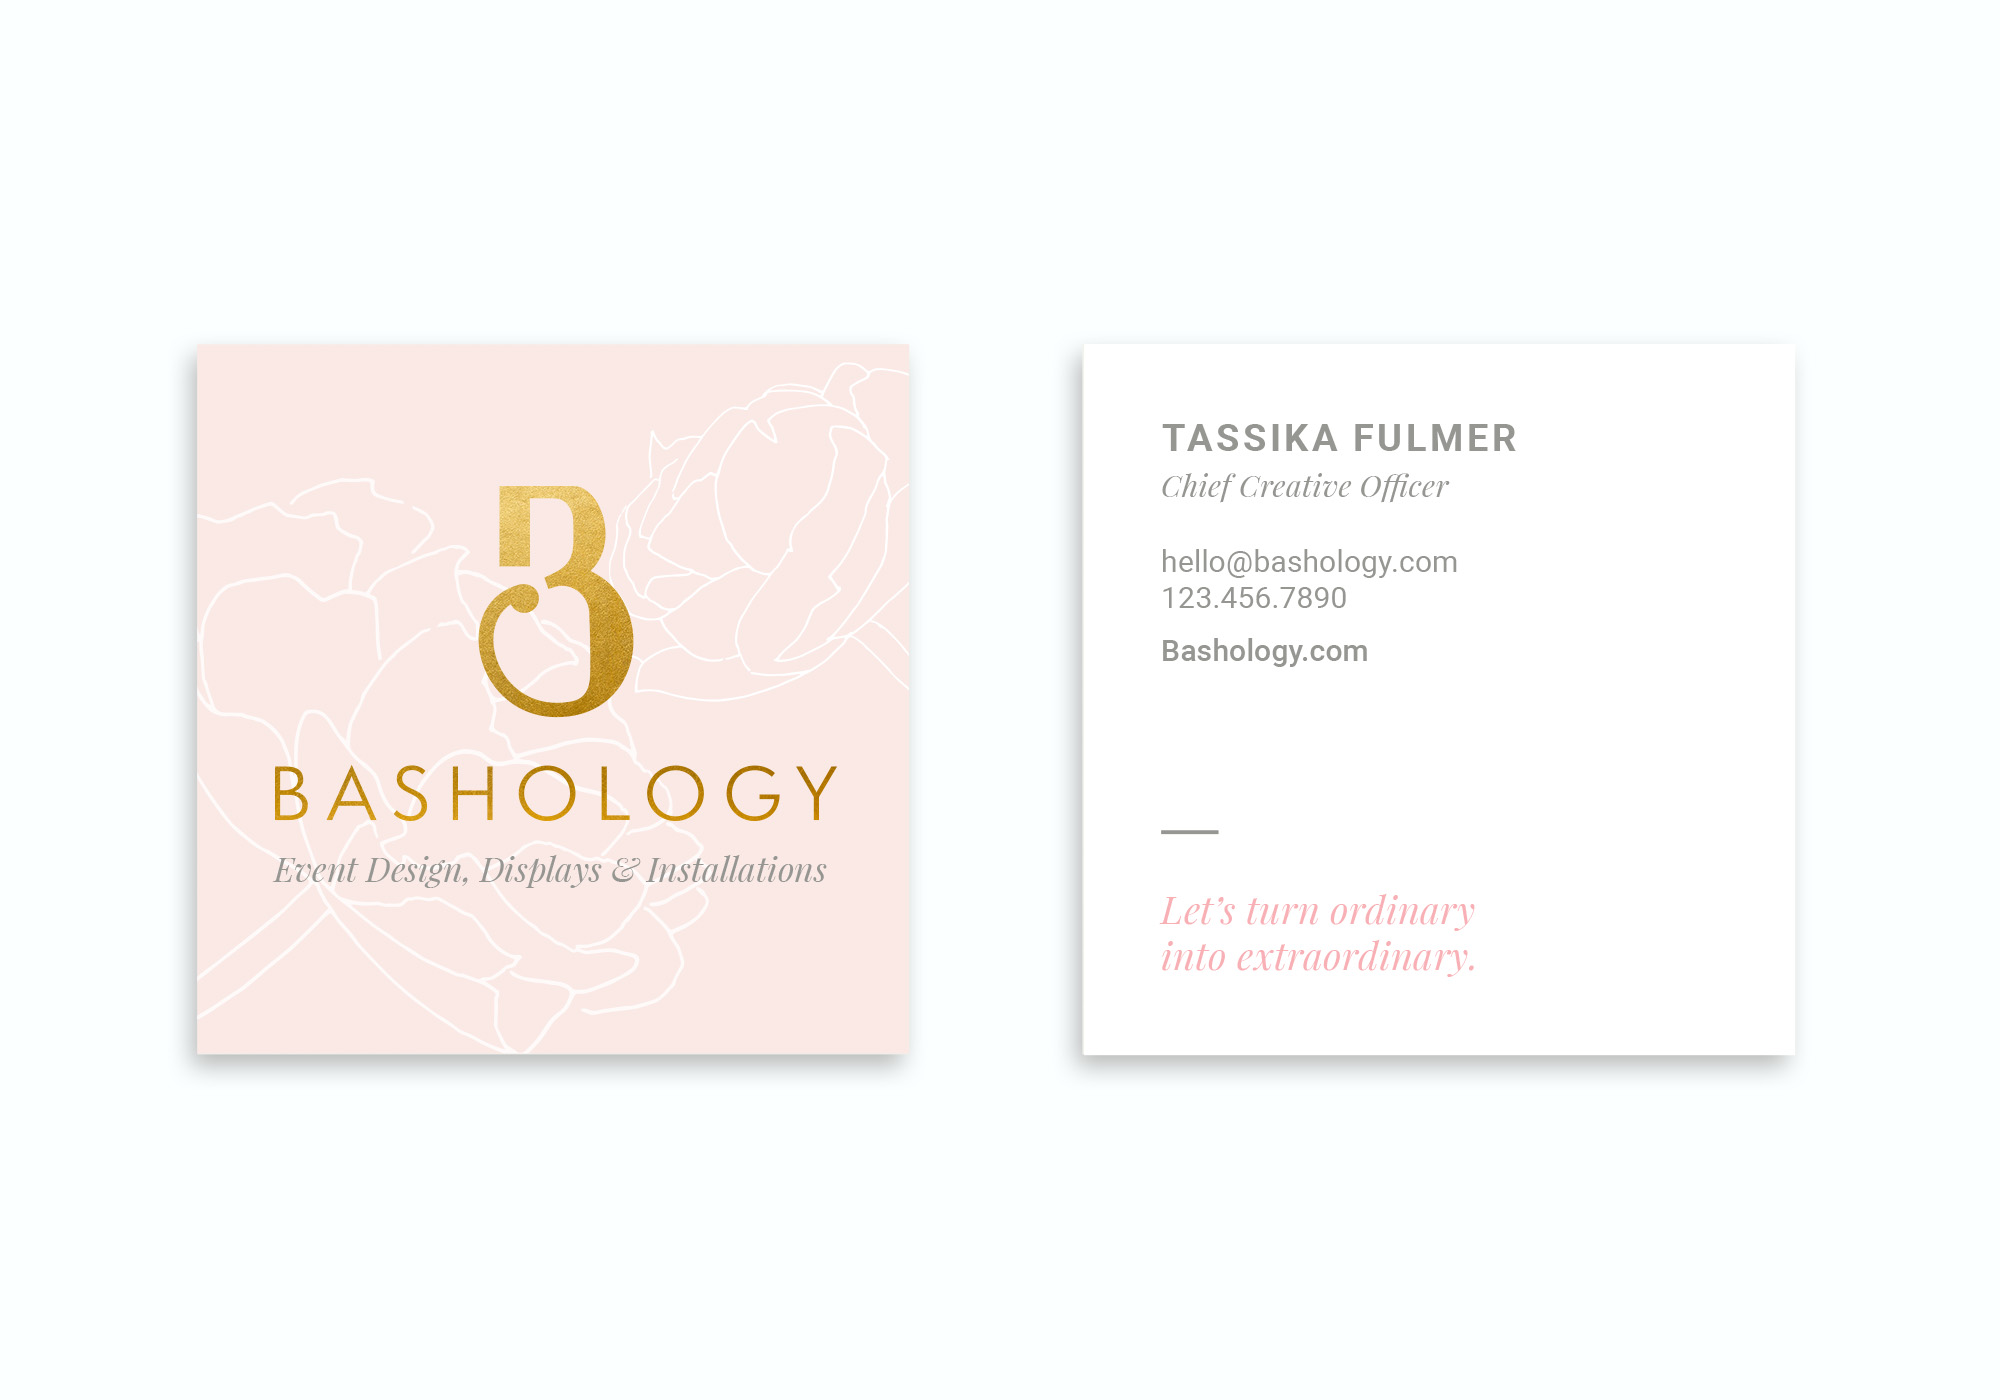 Bashology_Business card_02.jpg